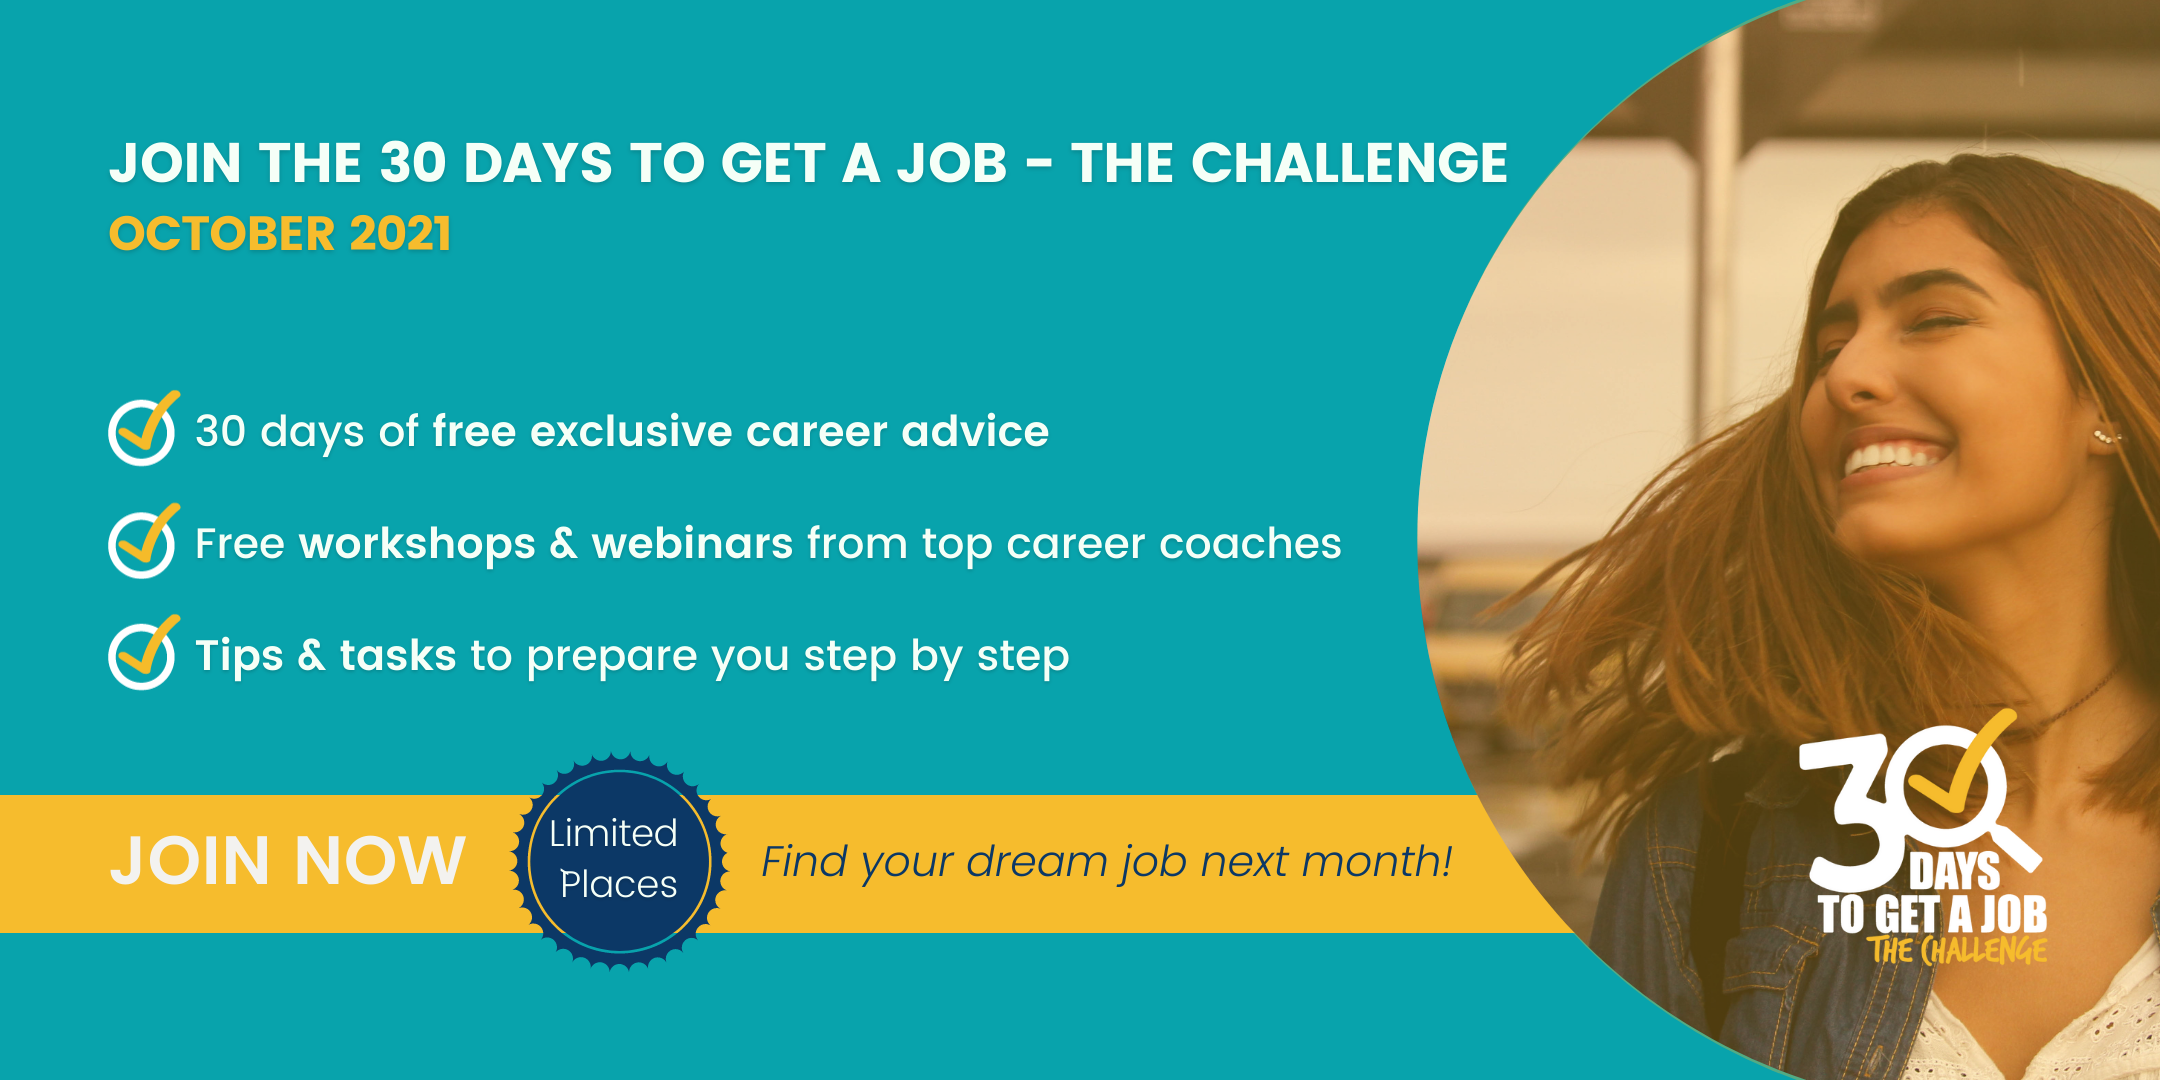 The 6th edition of the 30 Days to Get a Job - The Challenge